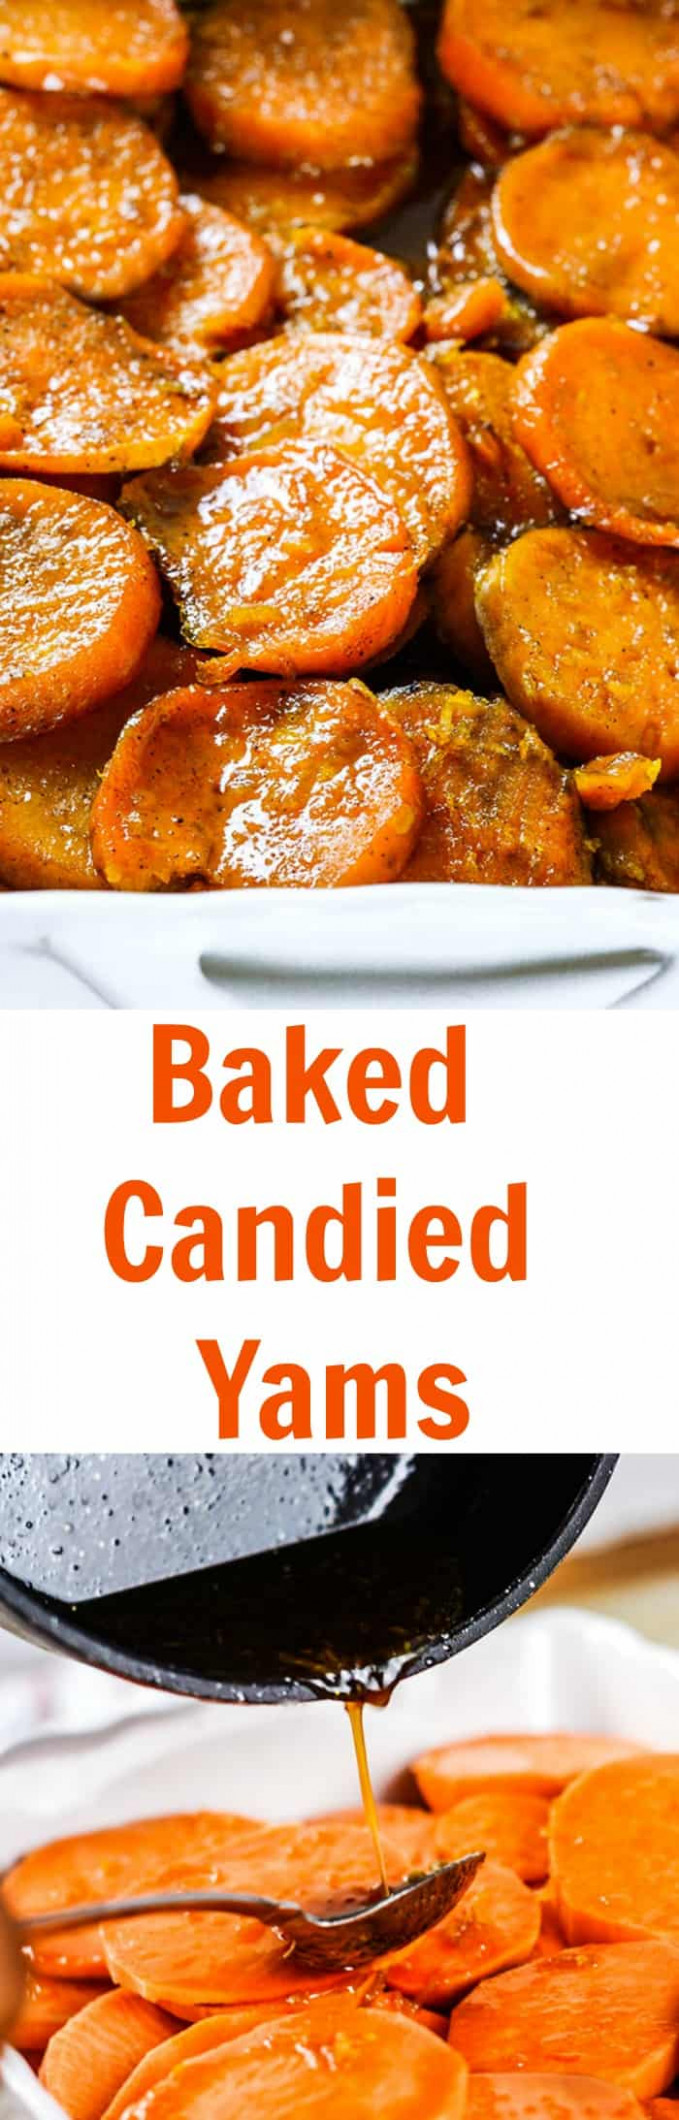 Vegan Baked Candied Yams | Healthier Steps - healthy yam recipes